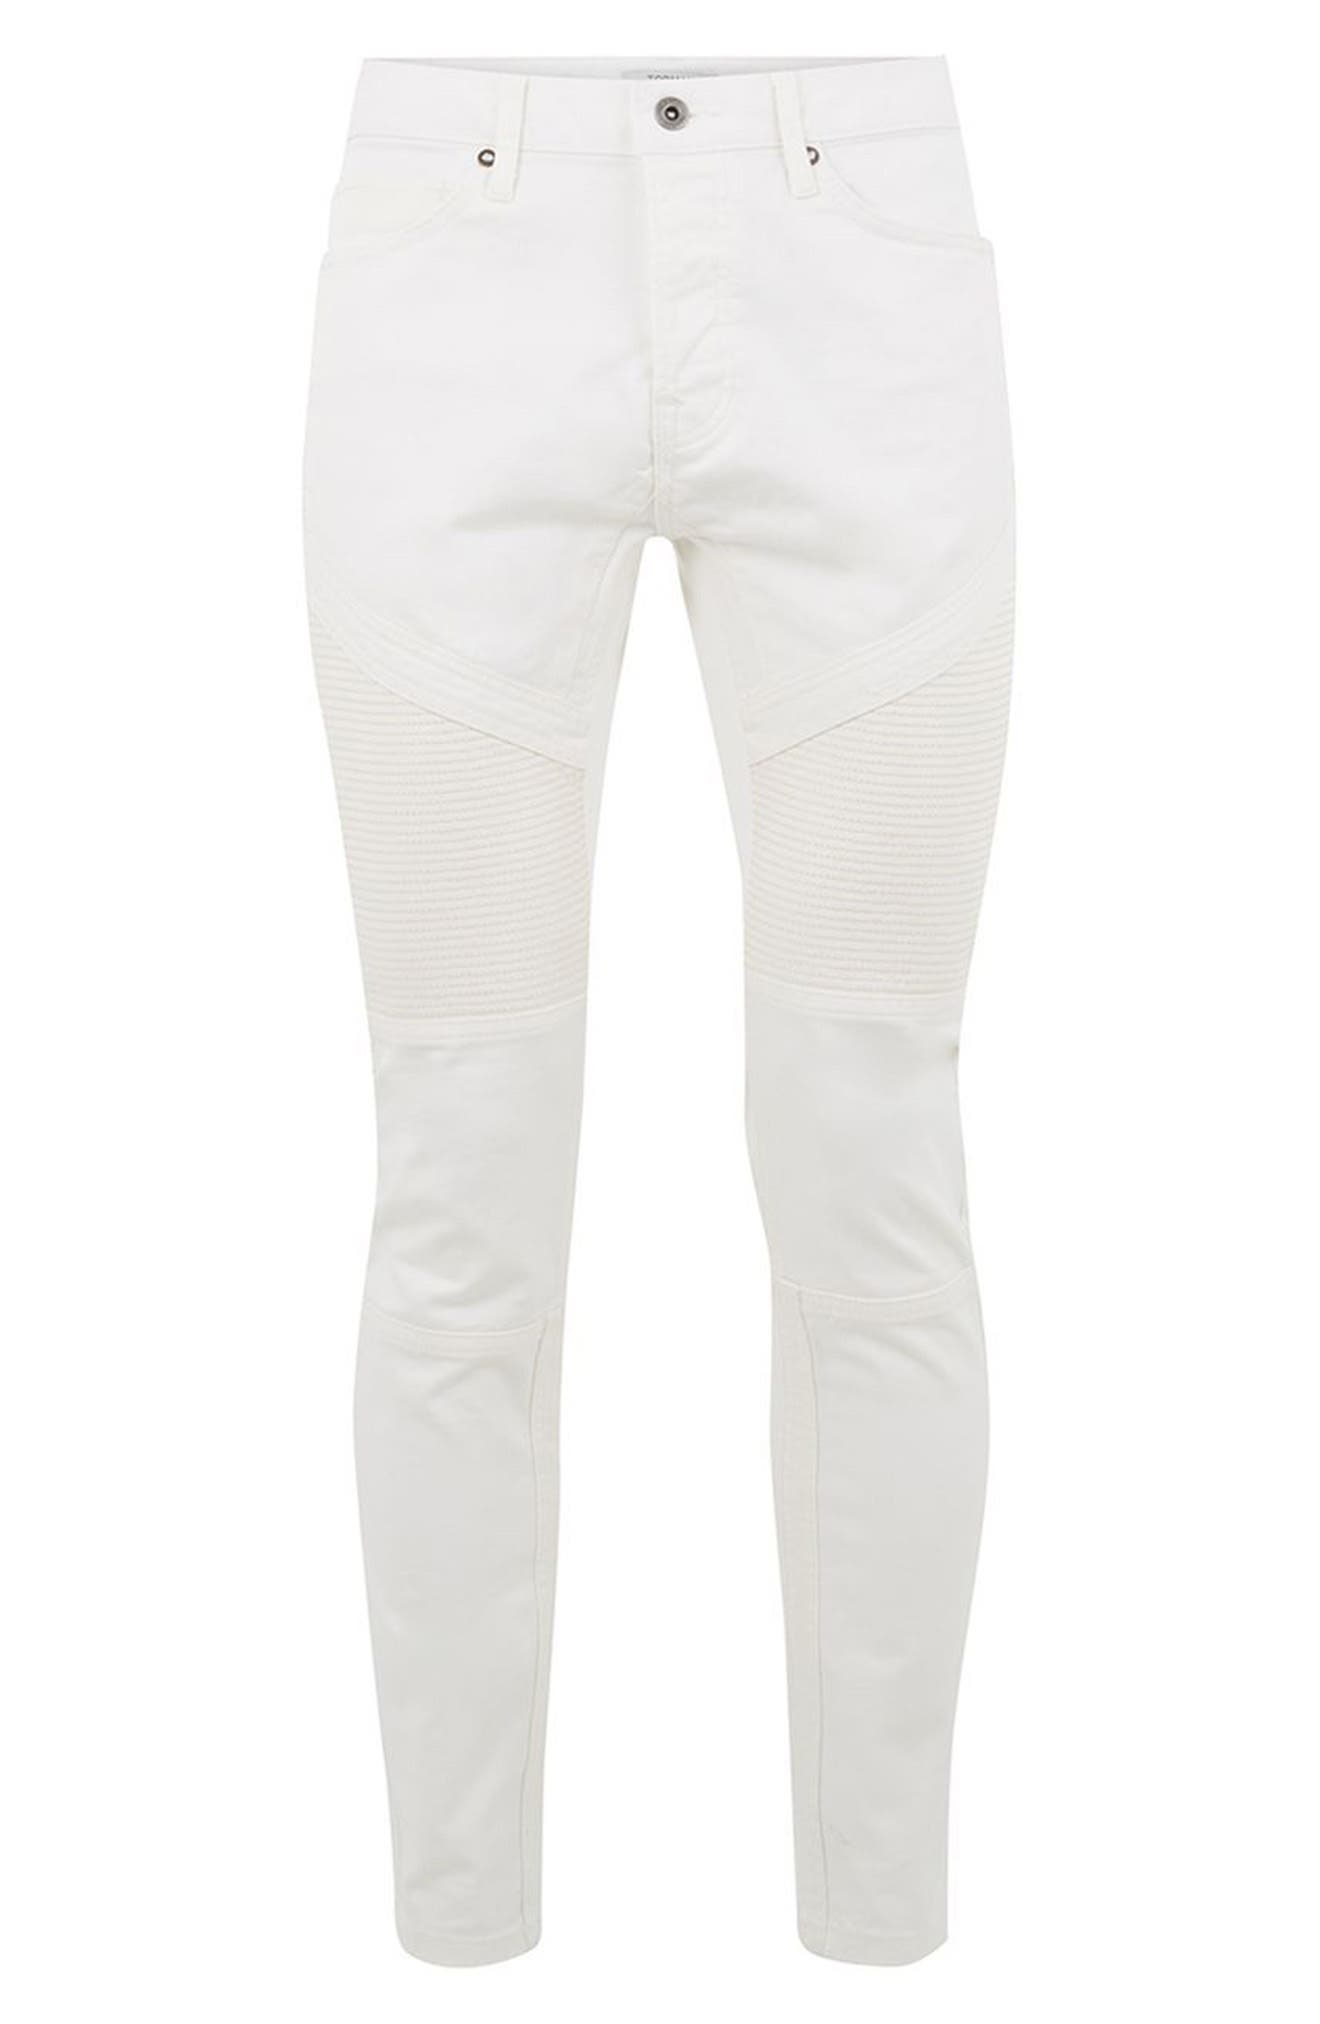 Biker Stretch Skinny Jeans,                             Alternate thumbnail 4, color,                             Cream